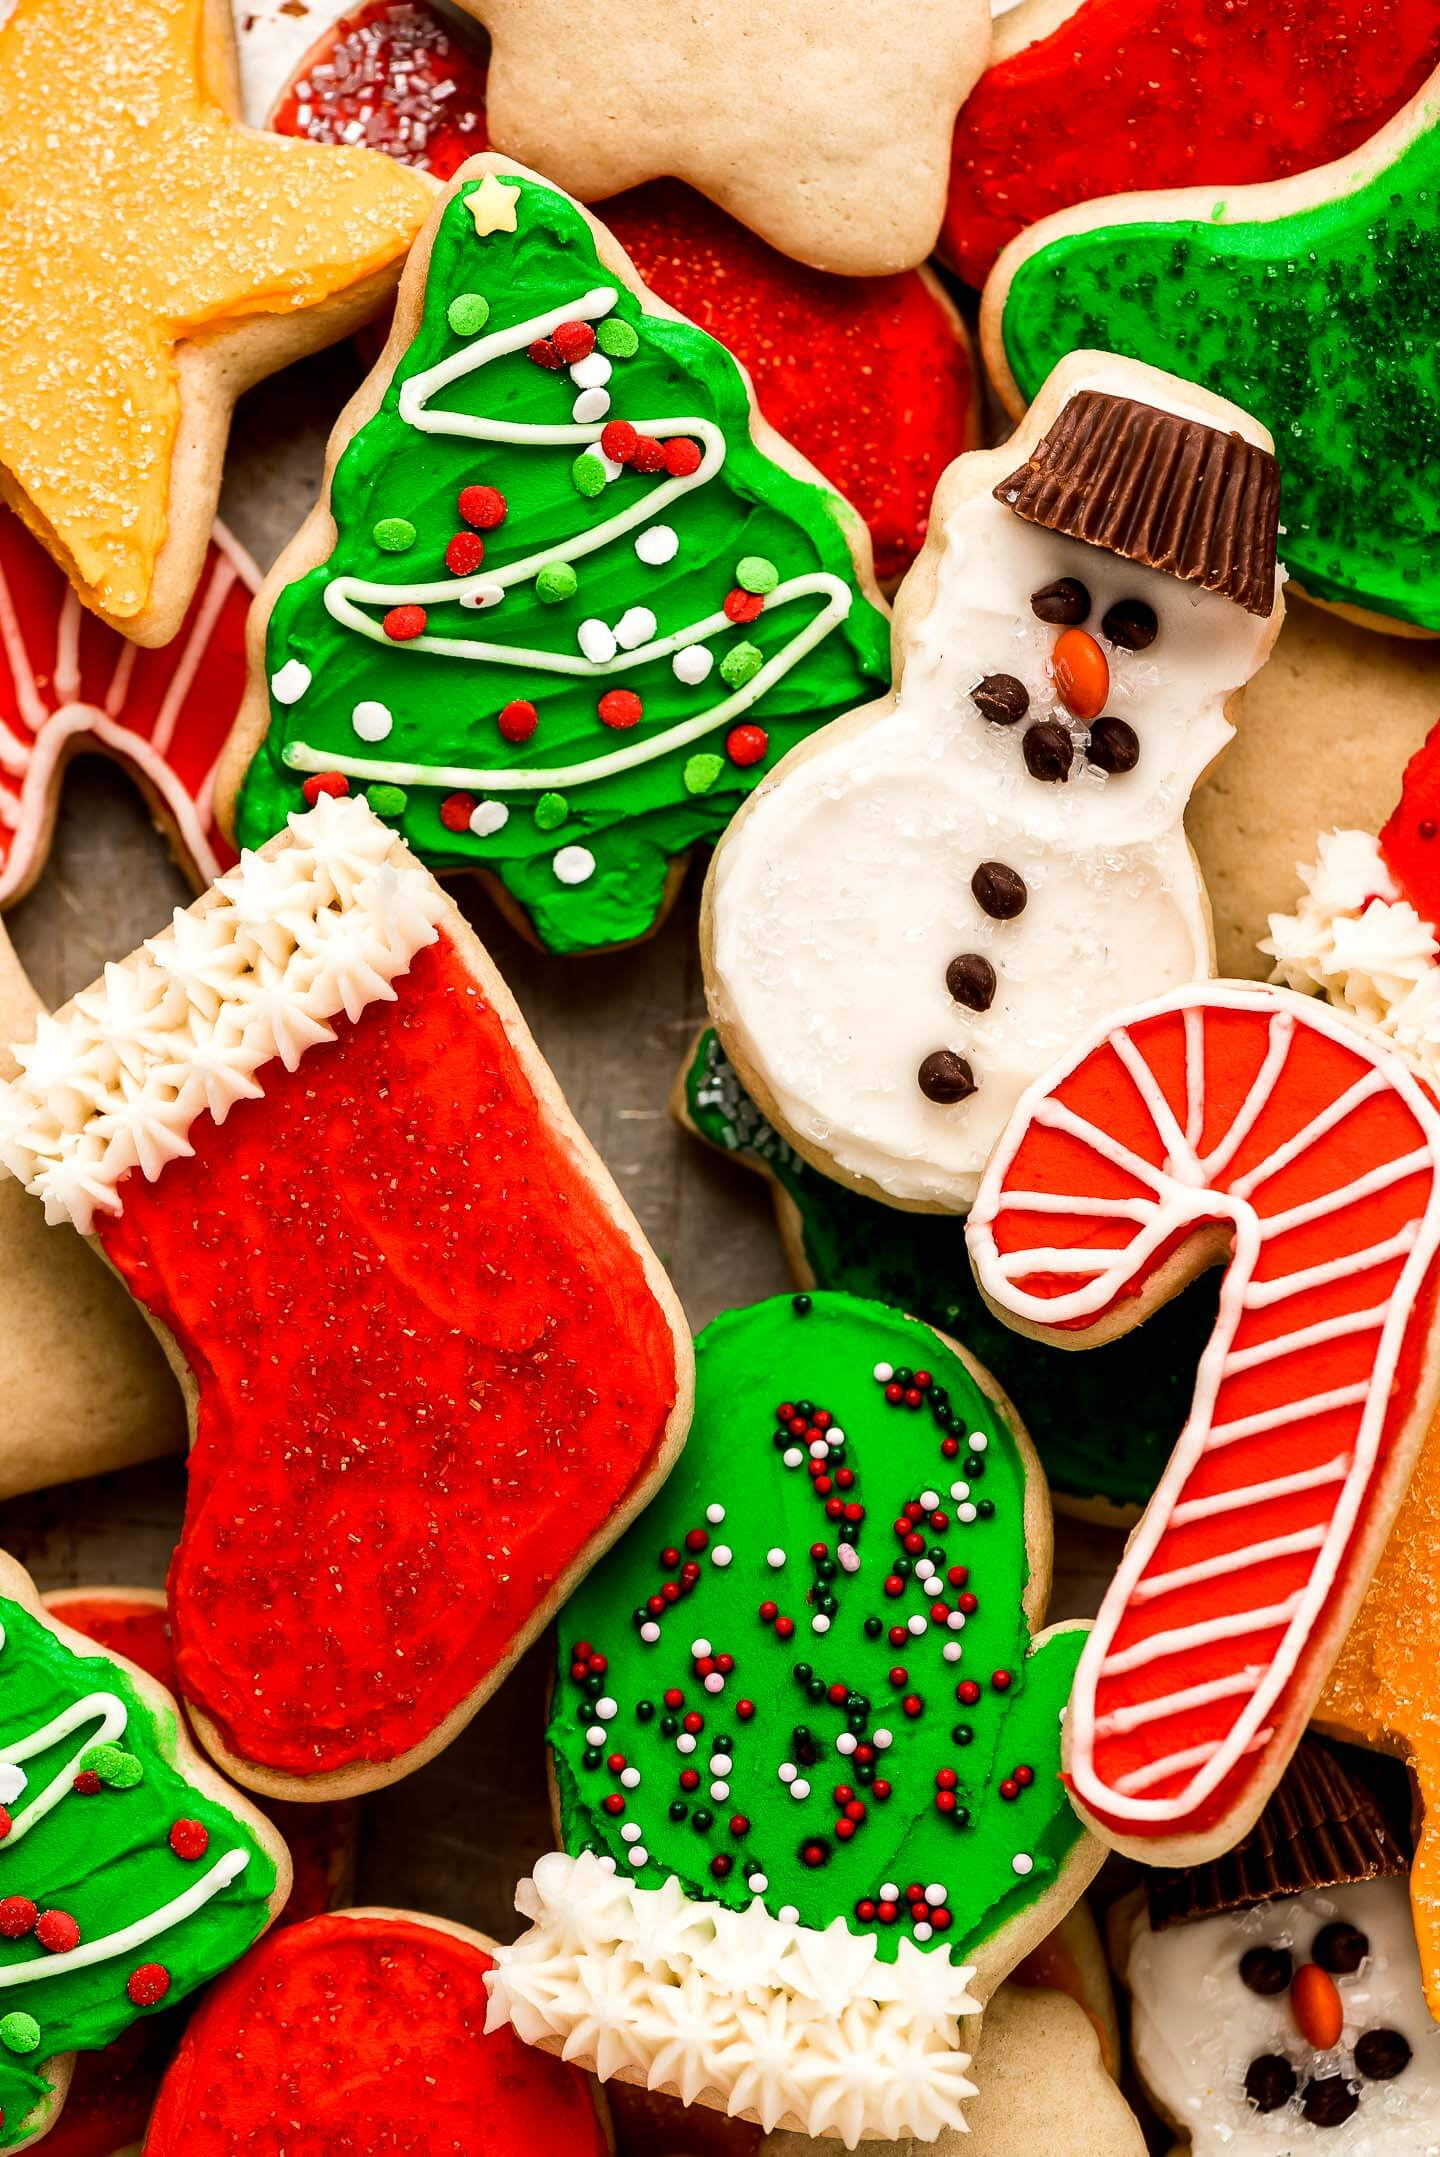 A close up of Christmas cut-out sugar cookies decorated with sprinkles and chocolate chips.